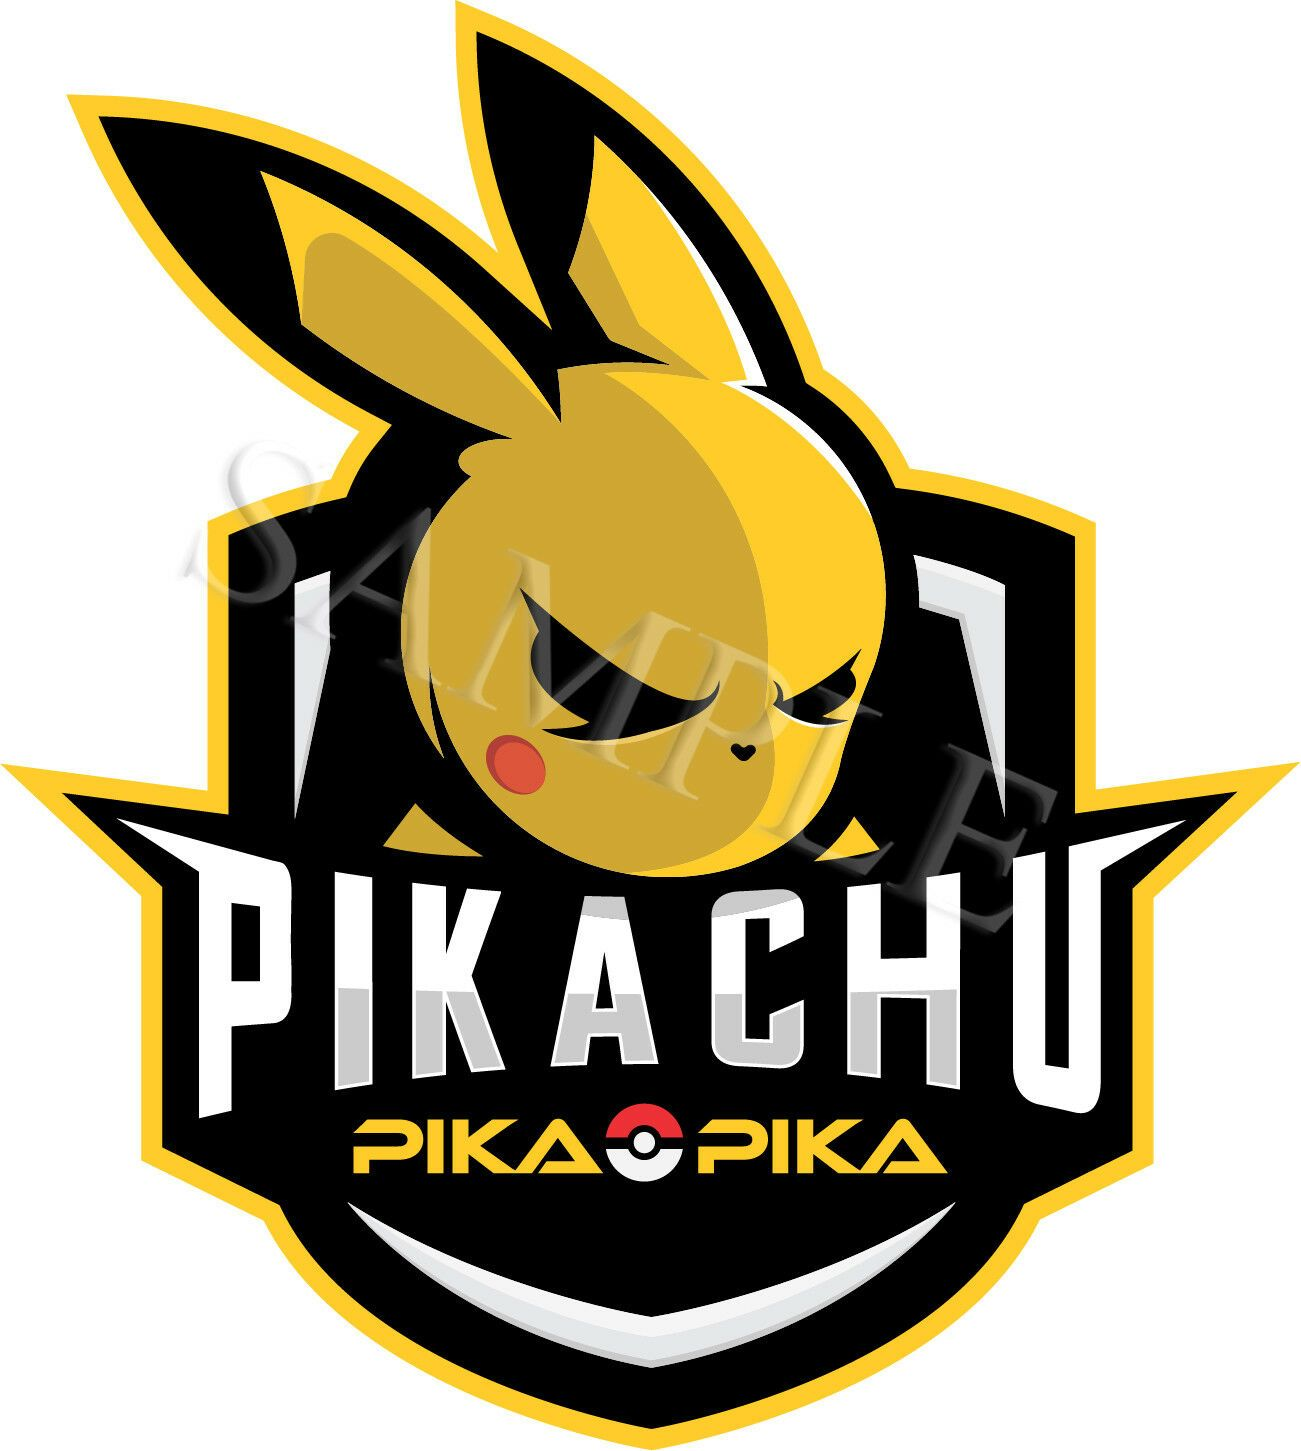 Pikachu gaming mascot logo, game, gamer car decal vinyl.